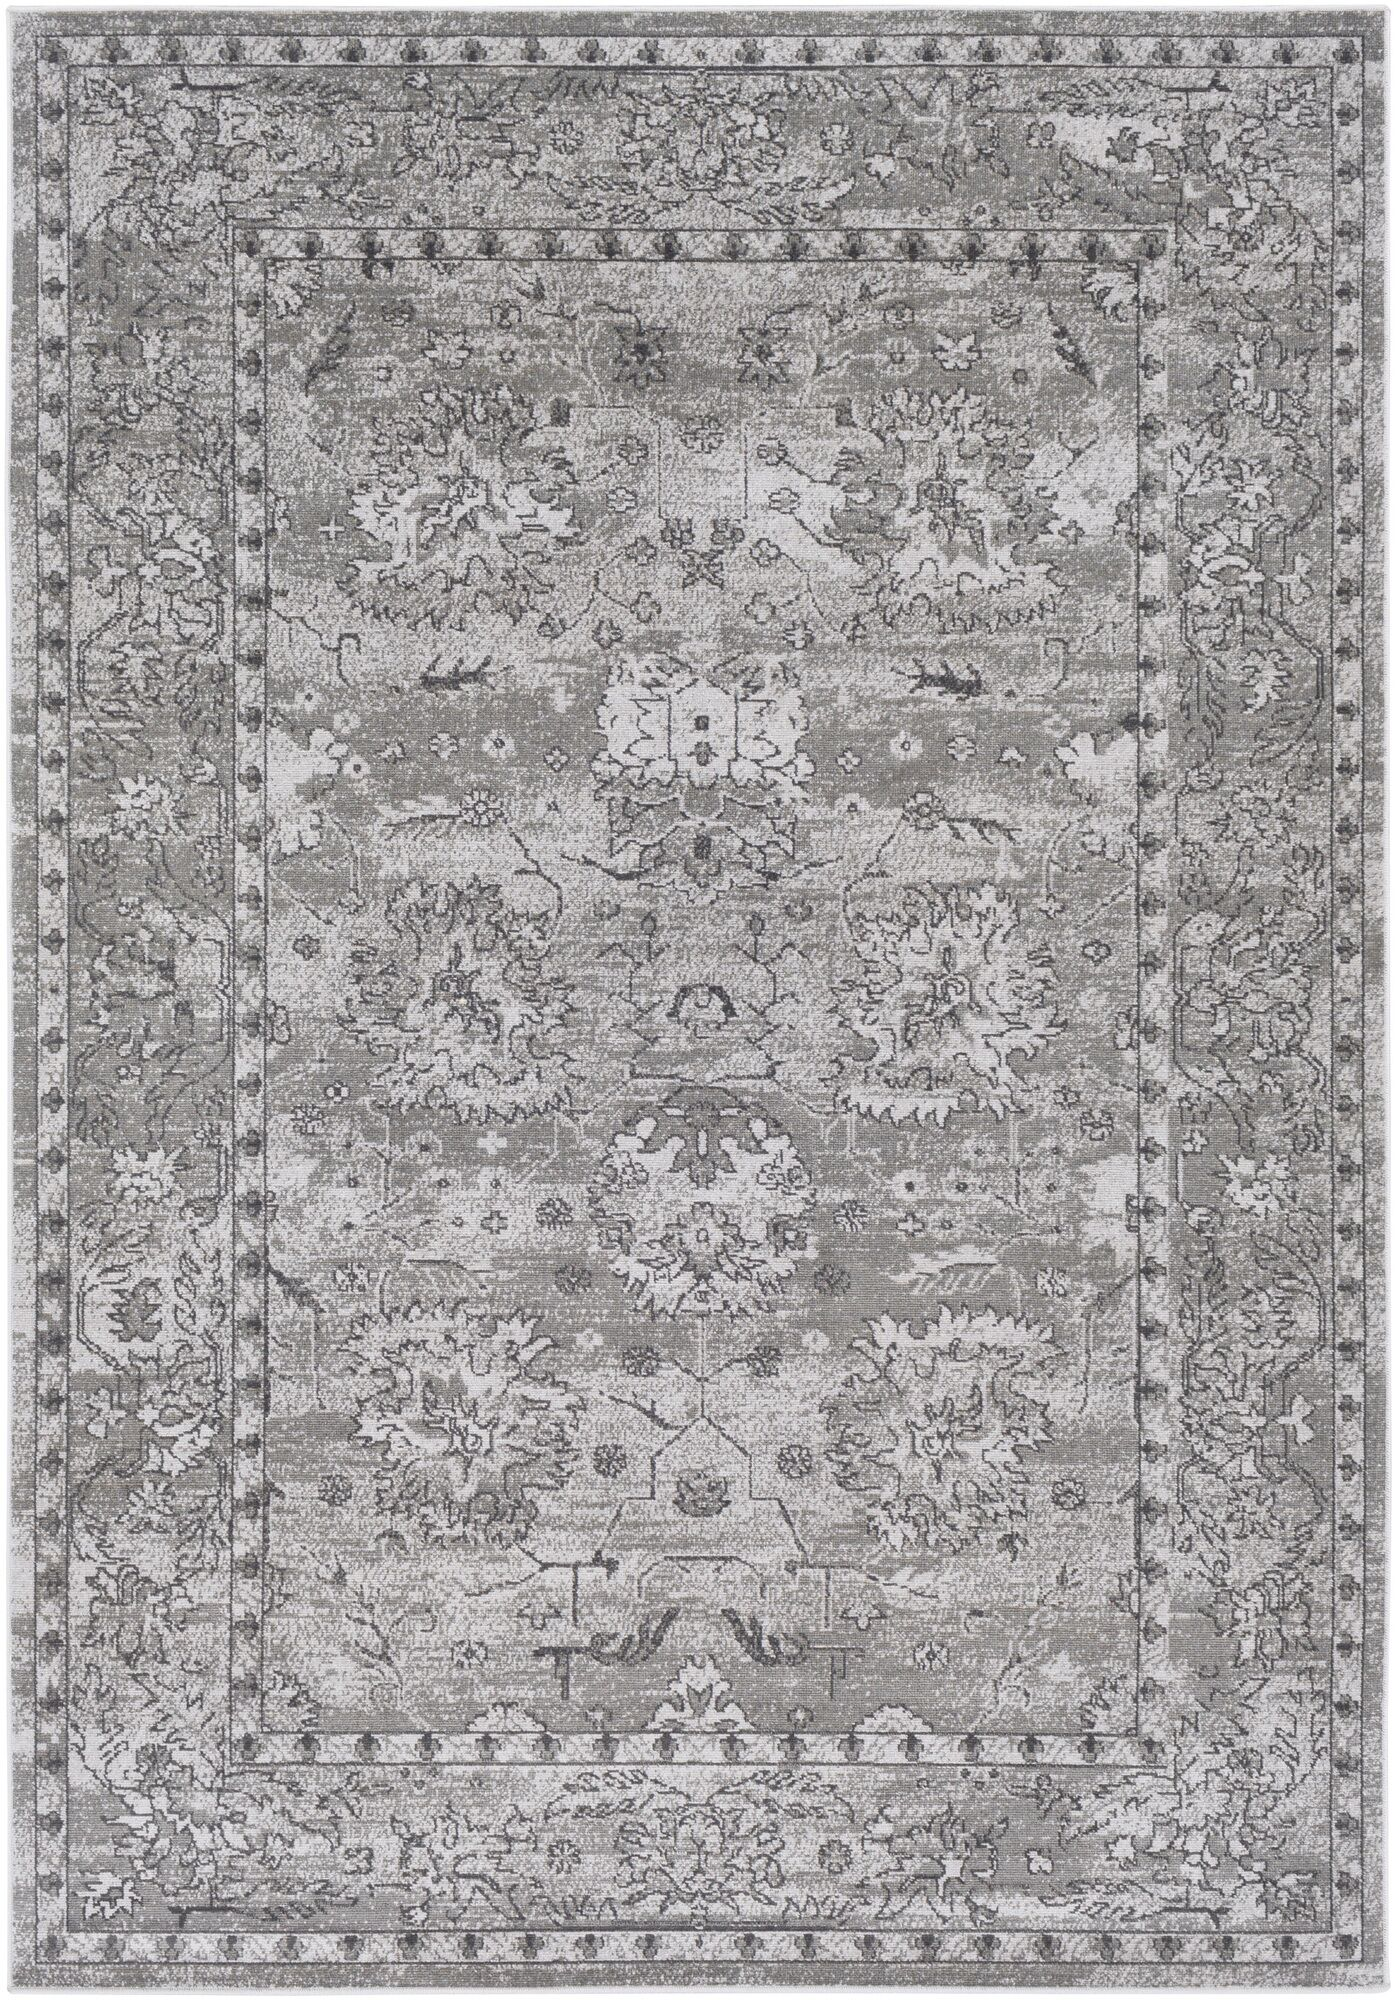 Riverbend Traditional Floral Gray/Charcoal Area Rug Rug Size: Rectangle 7'10